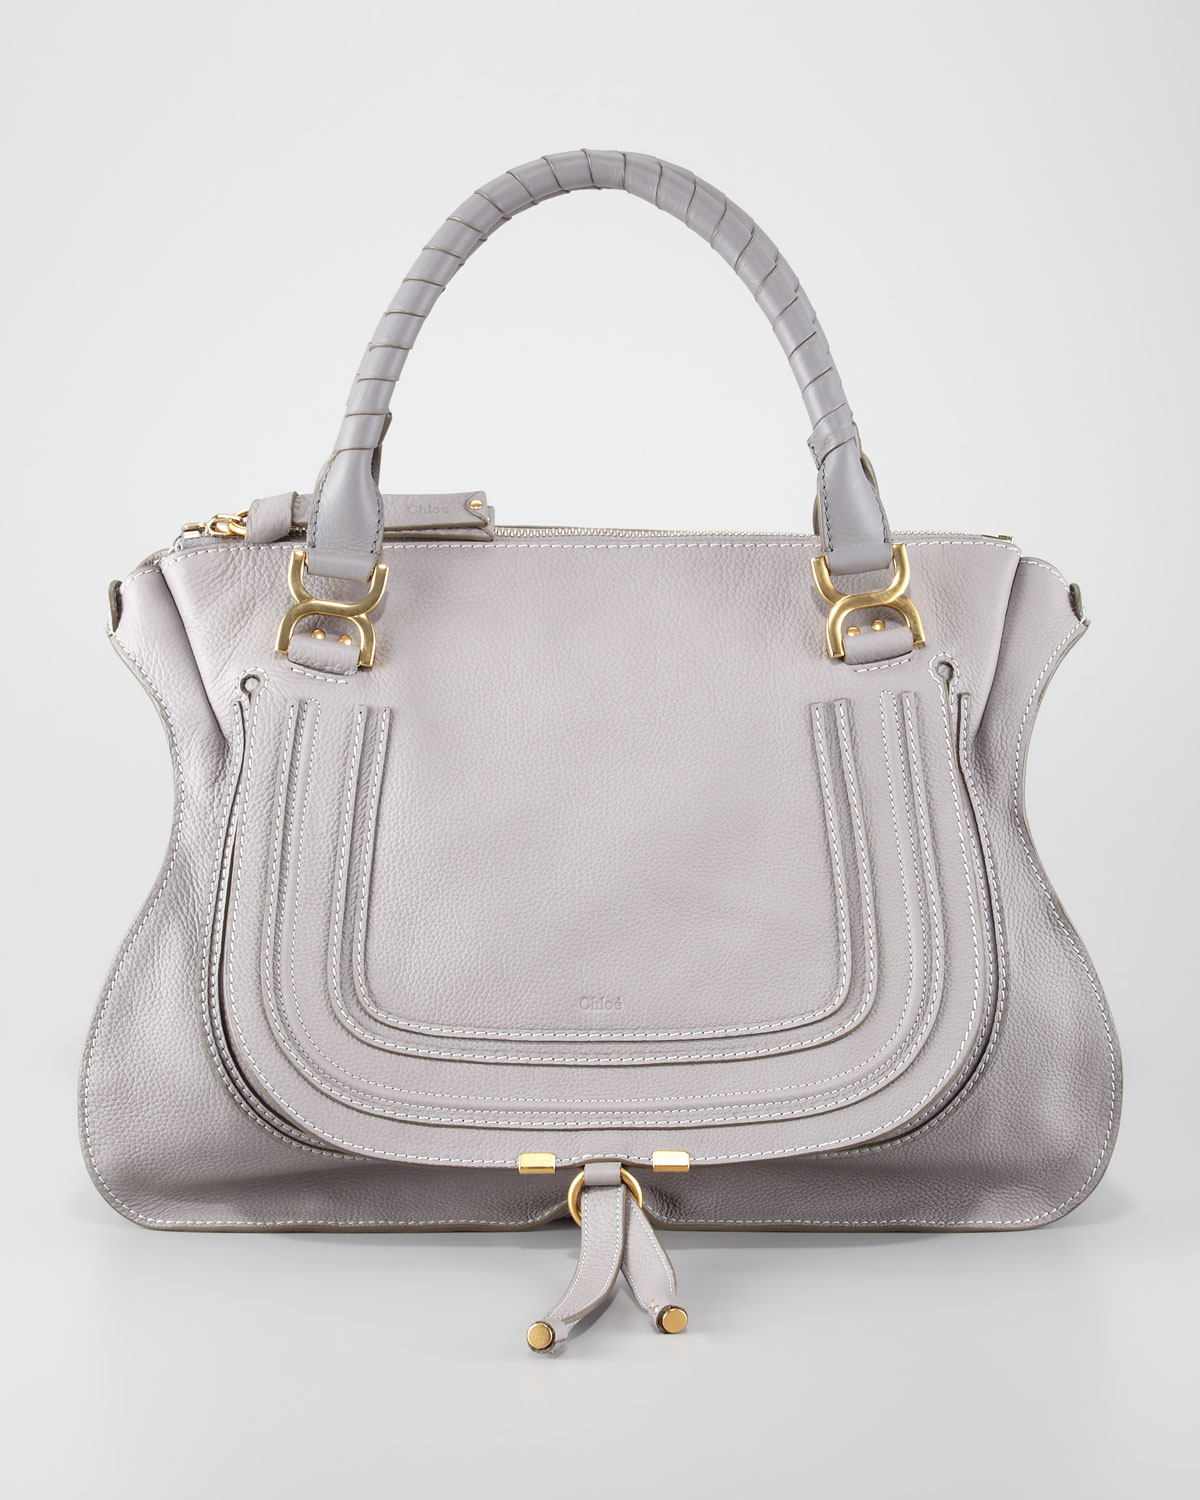 chlo marcie large shoulder bag cashmere gray in gray cashmere grey lyst. Black Bedroom Furniture Sets. Home Design Ideas